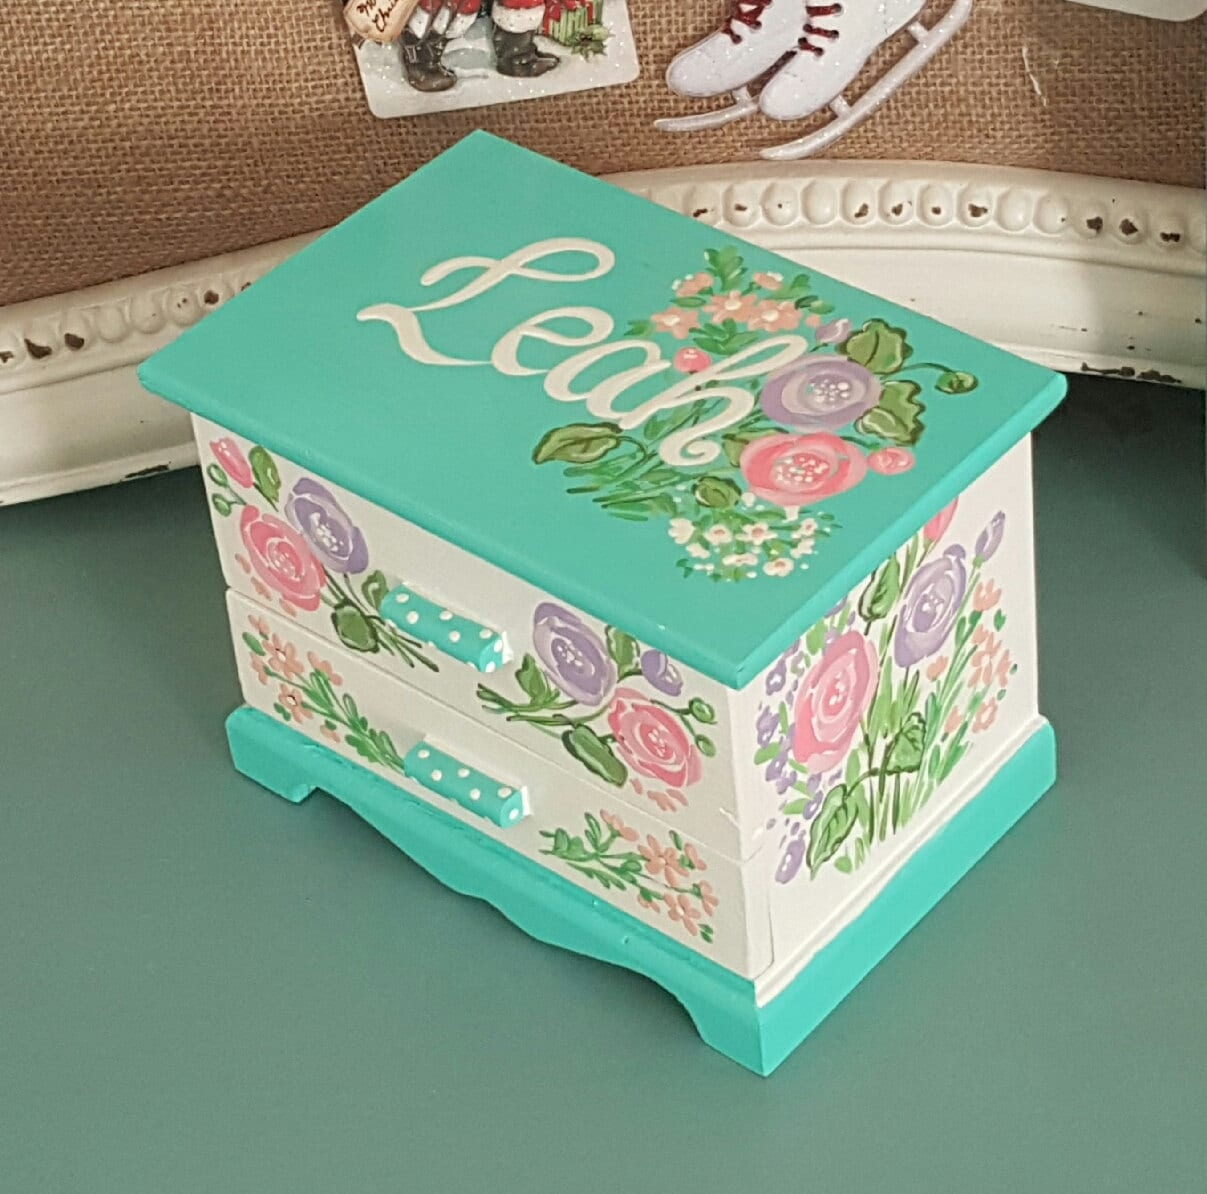 Childs Wood Painted Jewlery Box From  S